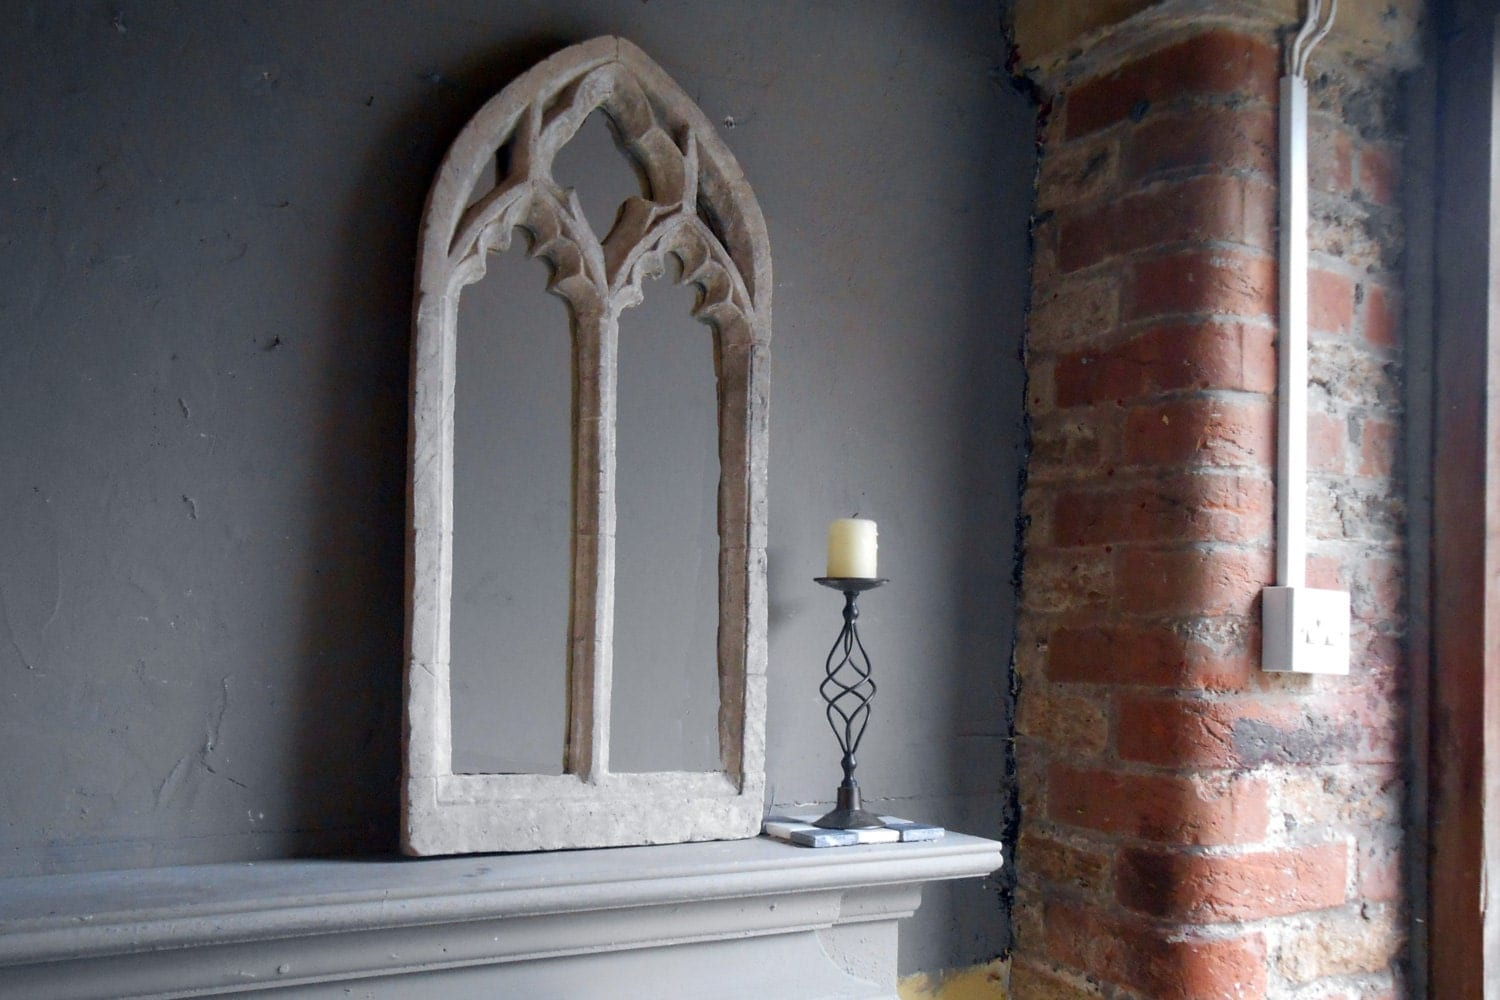 gothic church window frame mirrordouble arch ornate 32. Black Bedroom Furniture Sets. Home Design Ideas